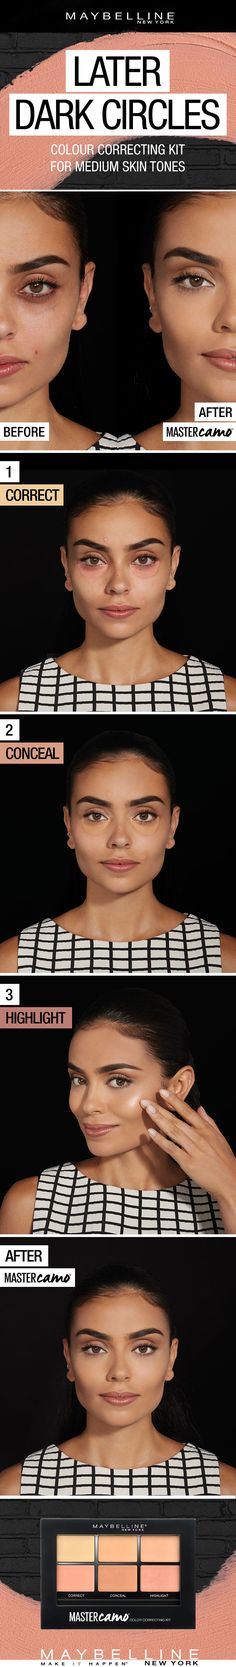 Girls with dark circles get it. Under-eye bags, dark spots and dark circles — all of it's a drag. Especially for medium skin tones. And with all the remedies and color correcting concealers, tricks and tools out there, it's easy to get overwhelmed. Which color do you use? What does the orange concealer do? When do you apply it? And where? That's why we've created our new color correcting palette for your medium skin tone. All it takes is three easy steps: Correct, Conceal and Highlight.